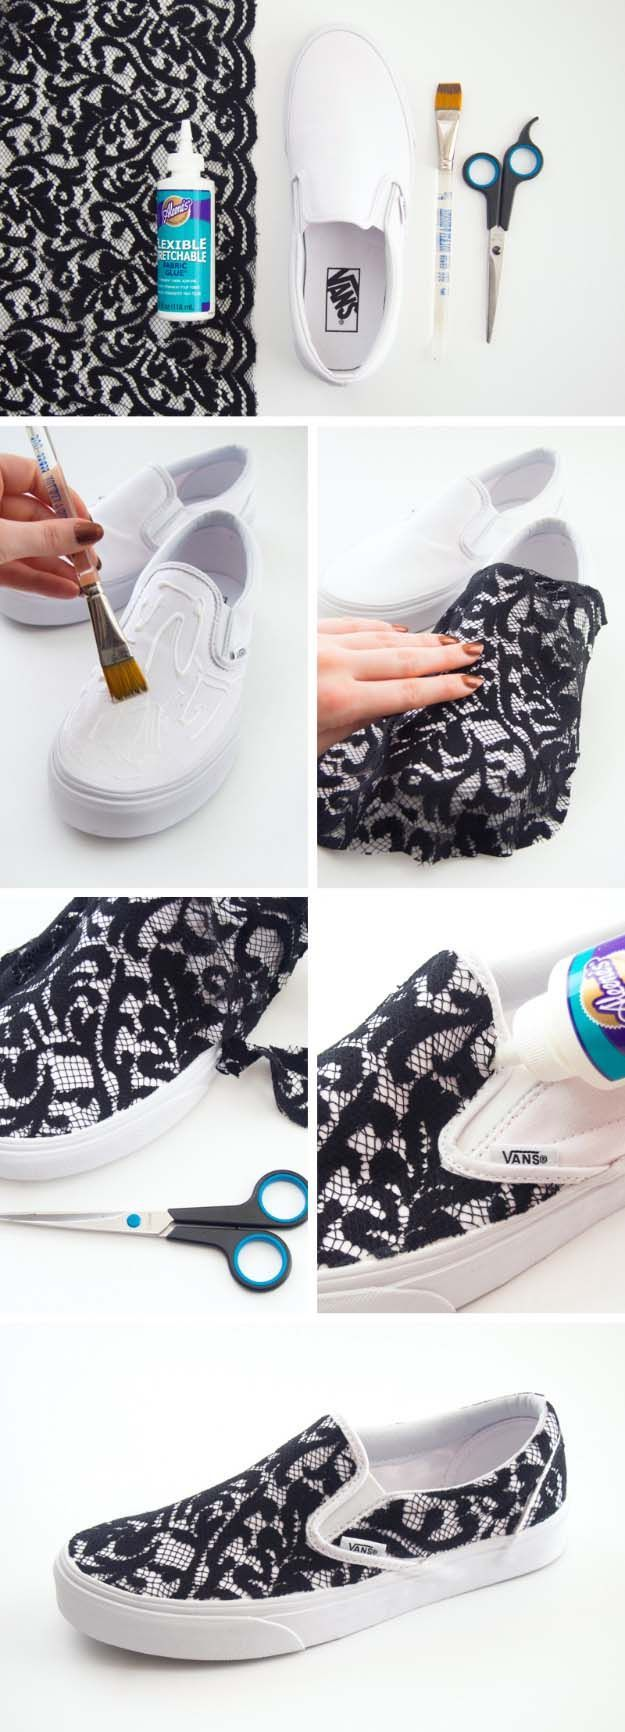 Cool diy fashion ideas pinterest sewing jeans fashion project cool diy fashion ideas fun do it yourself fashion projects learn how to refashion and sew jeans t shirts skirts and more lace slip on sneakers solutioingenieria Image collections